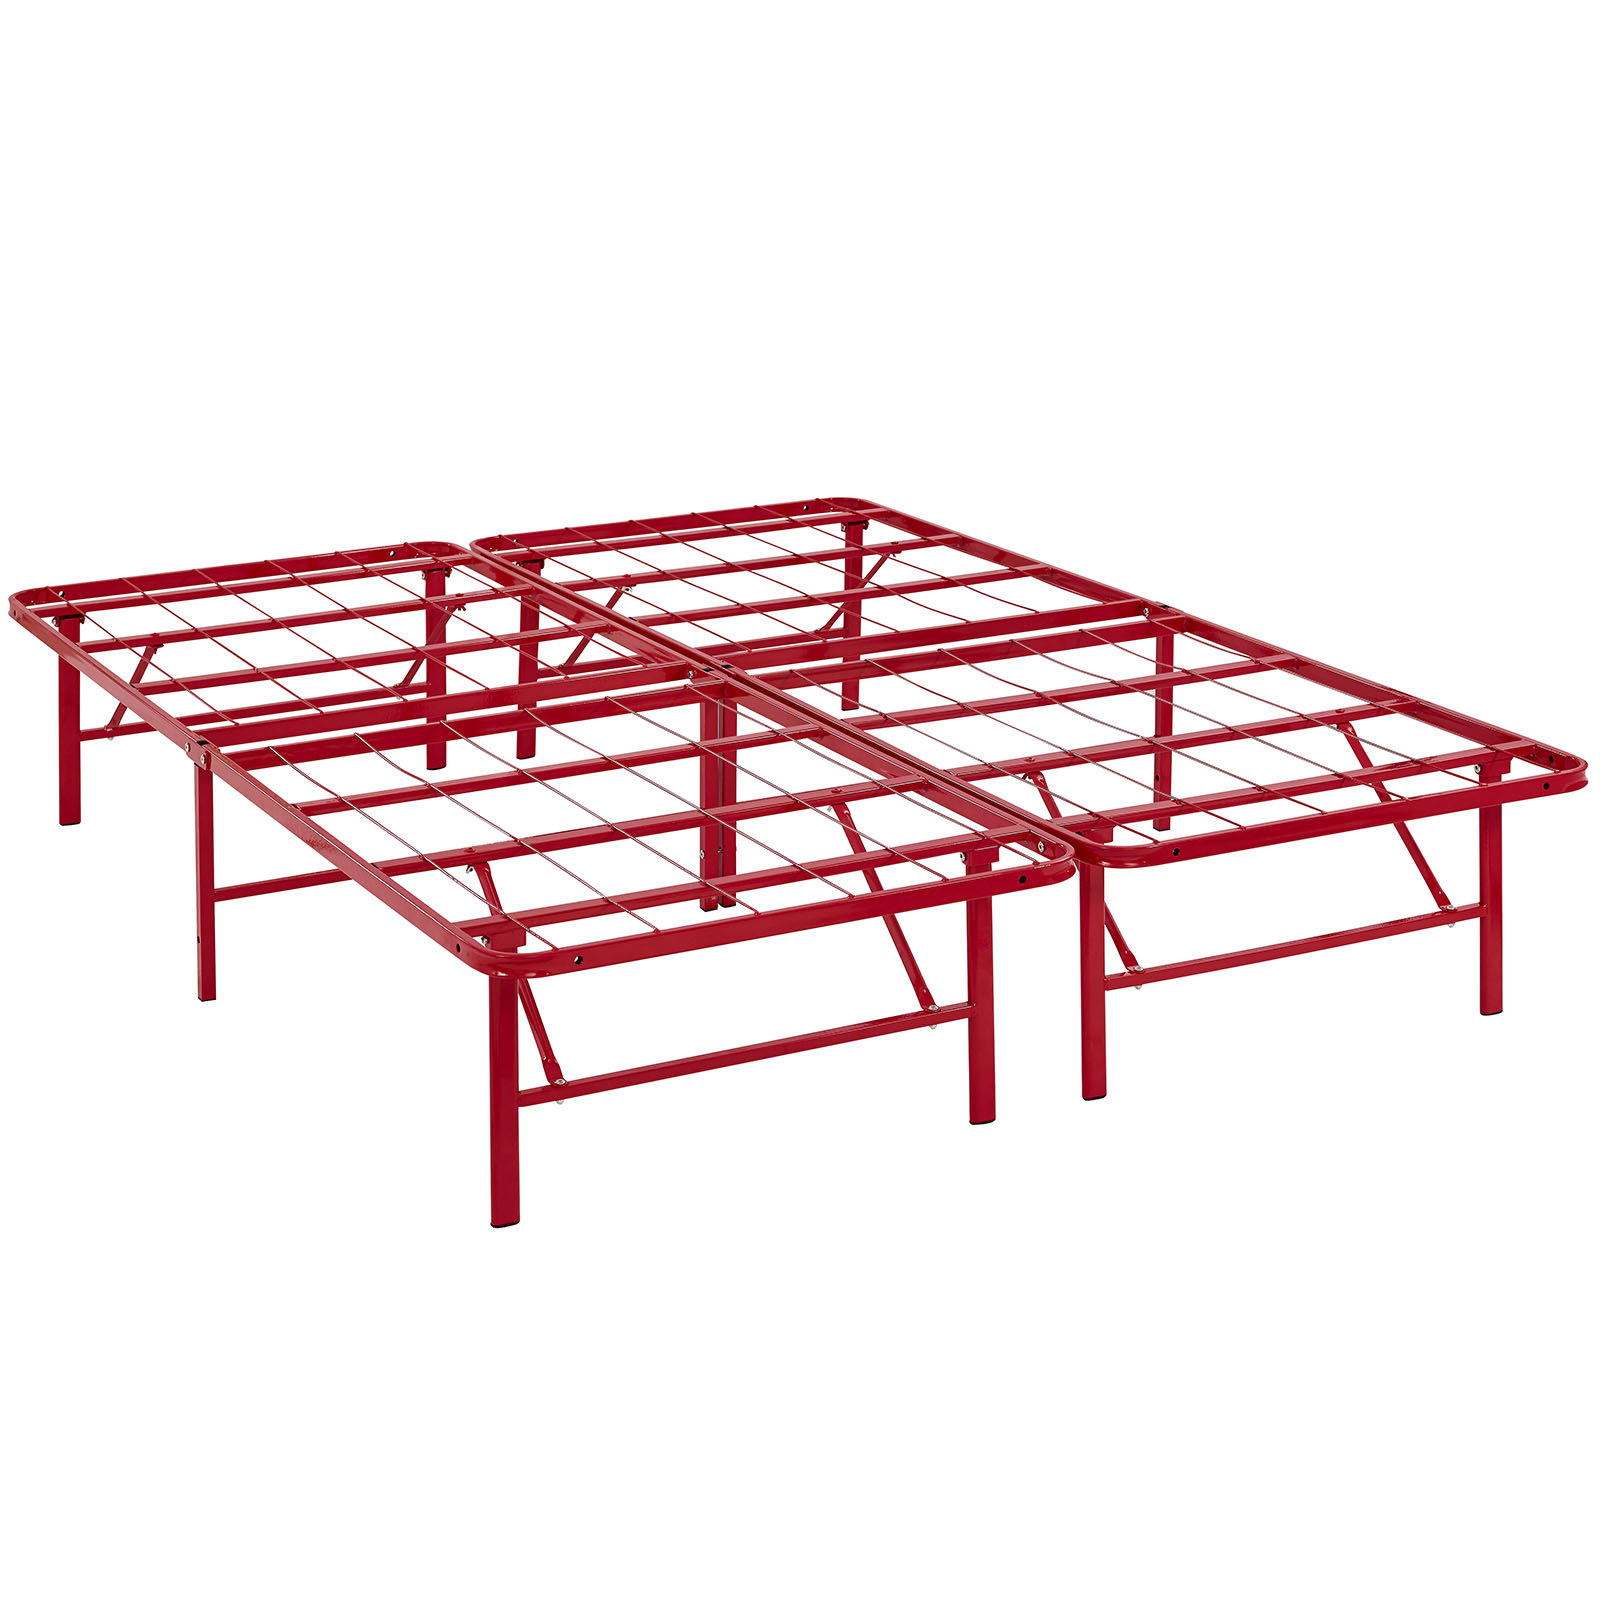 Modern Contemporary Urban Design Bedroom Full Size Platform Bed Frame, Red, Metal Steel